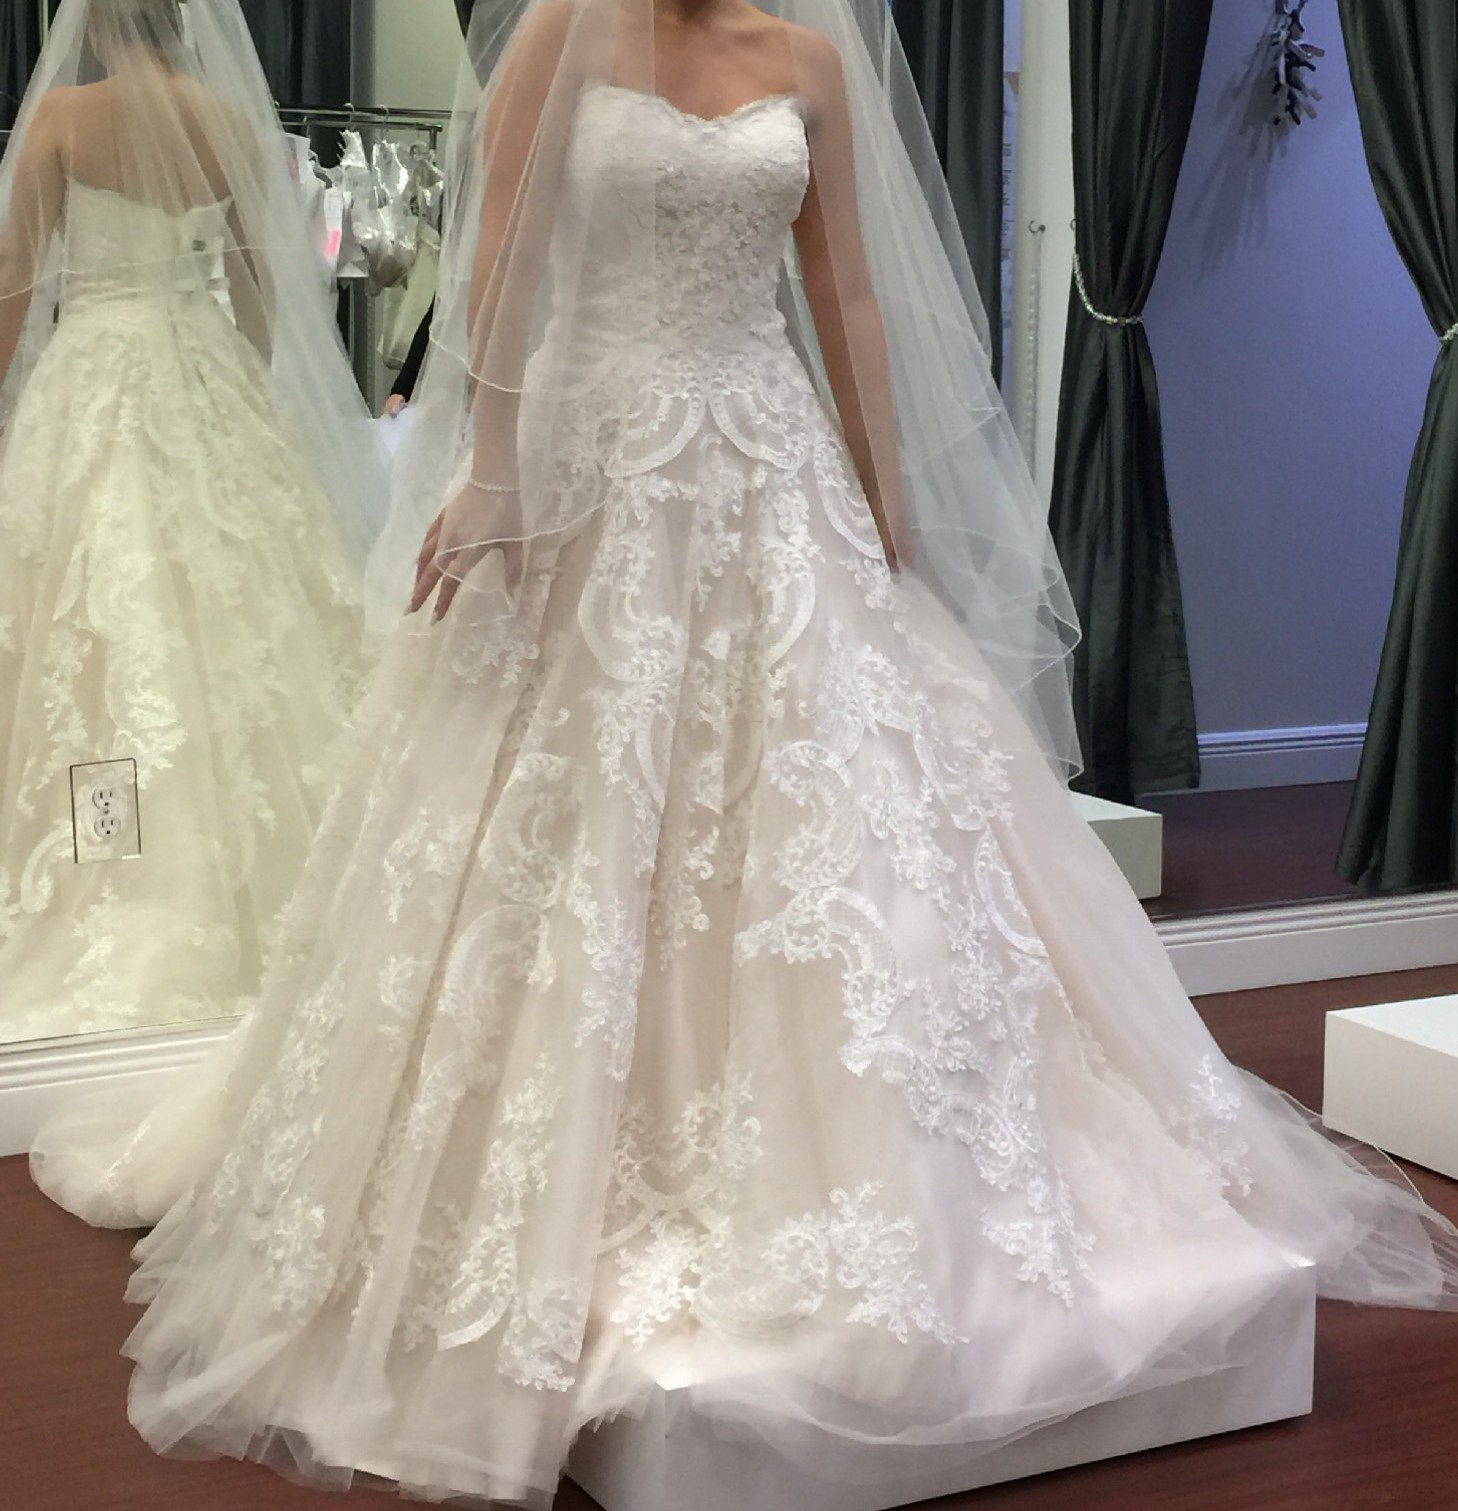 Allure Bridals Wedding Dresses: Allure Bridals Wedding Dress On Sale 37% Off